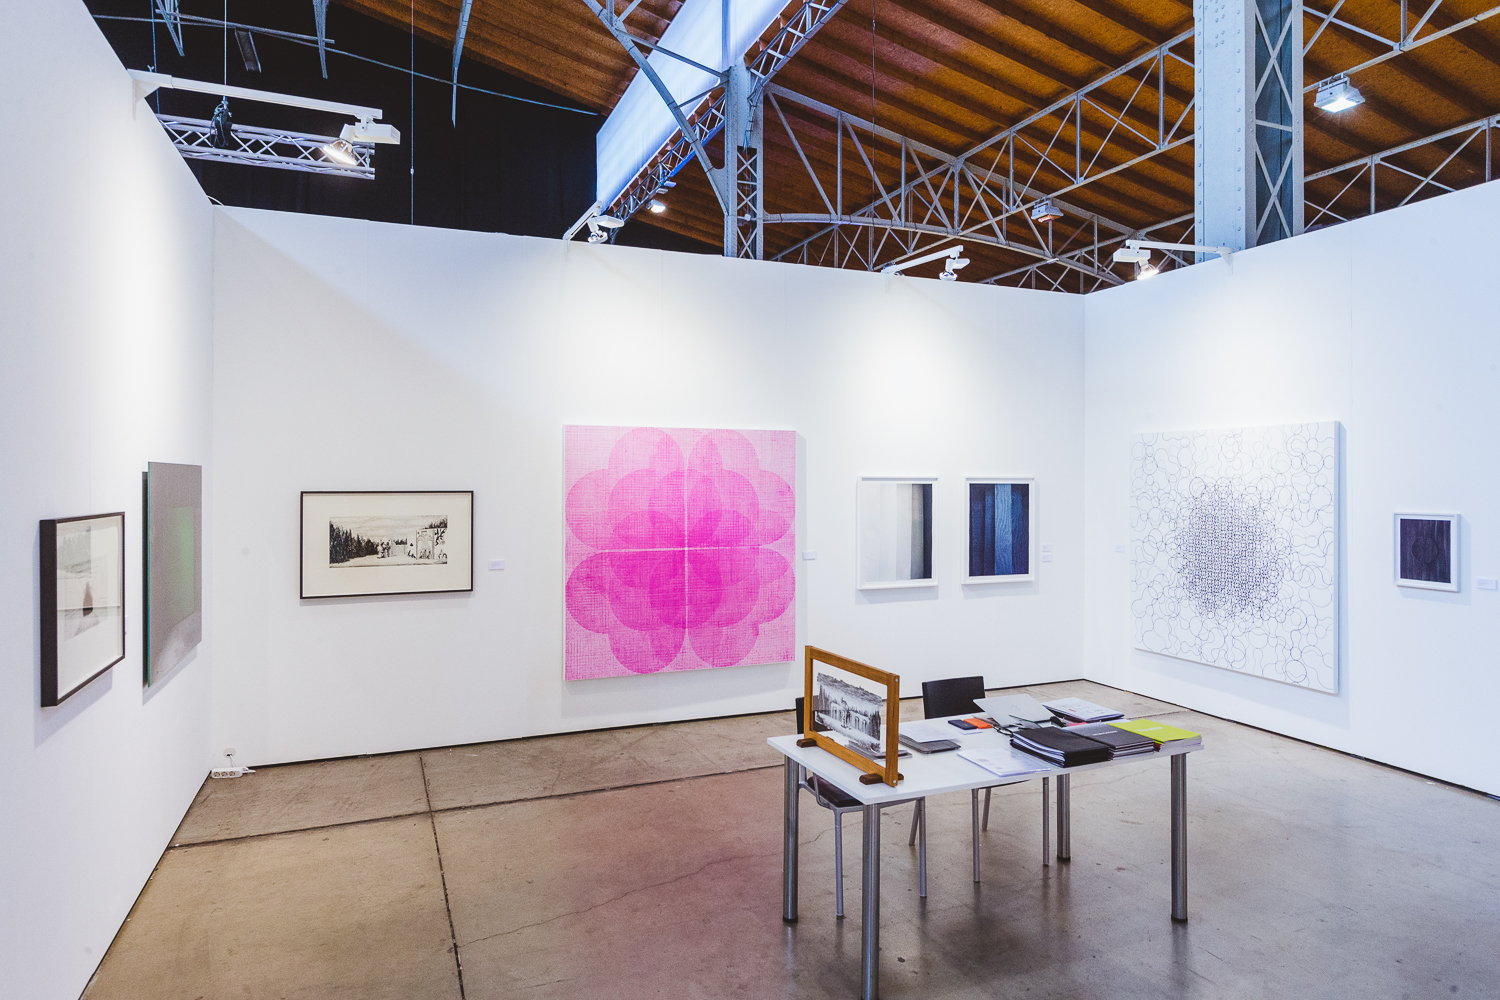 viennacontemporary, installation view,  2017